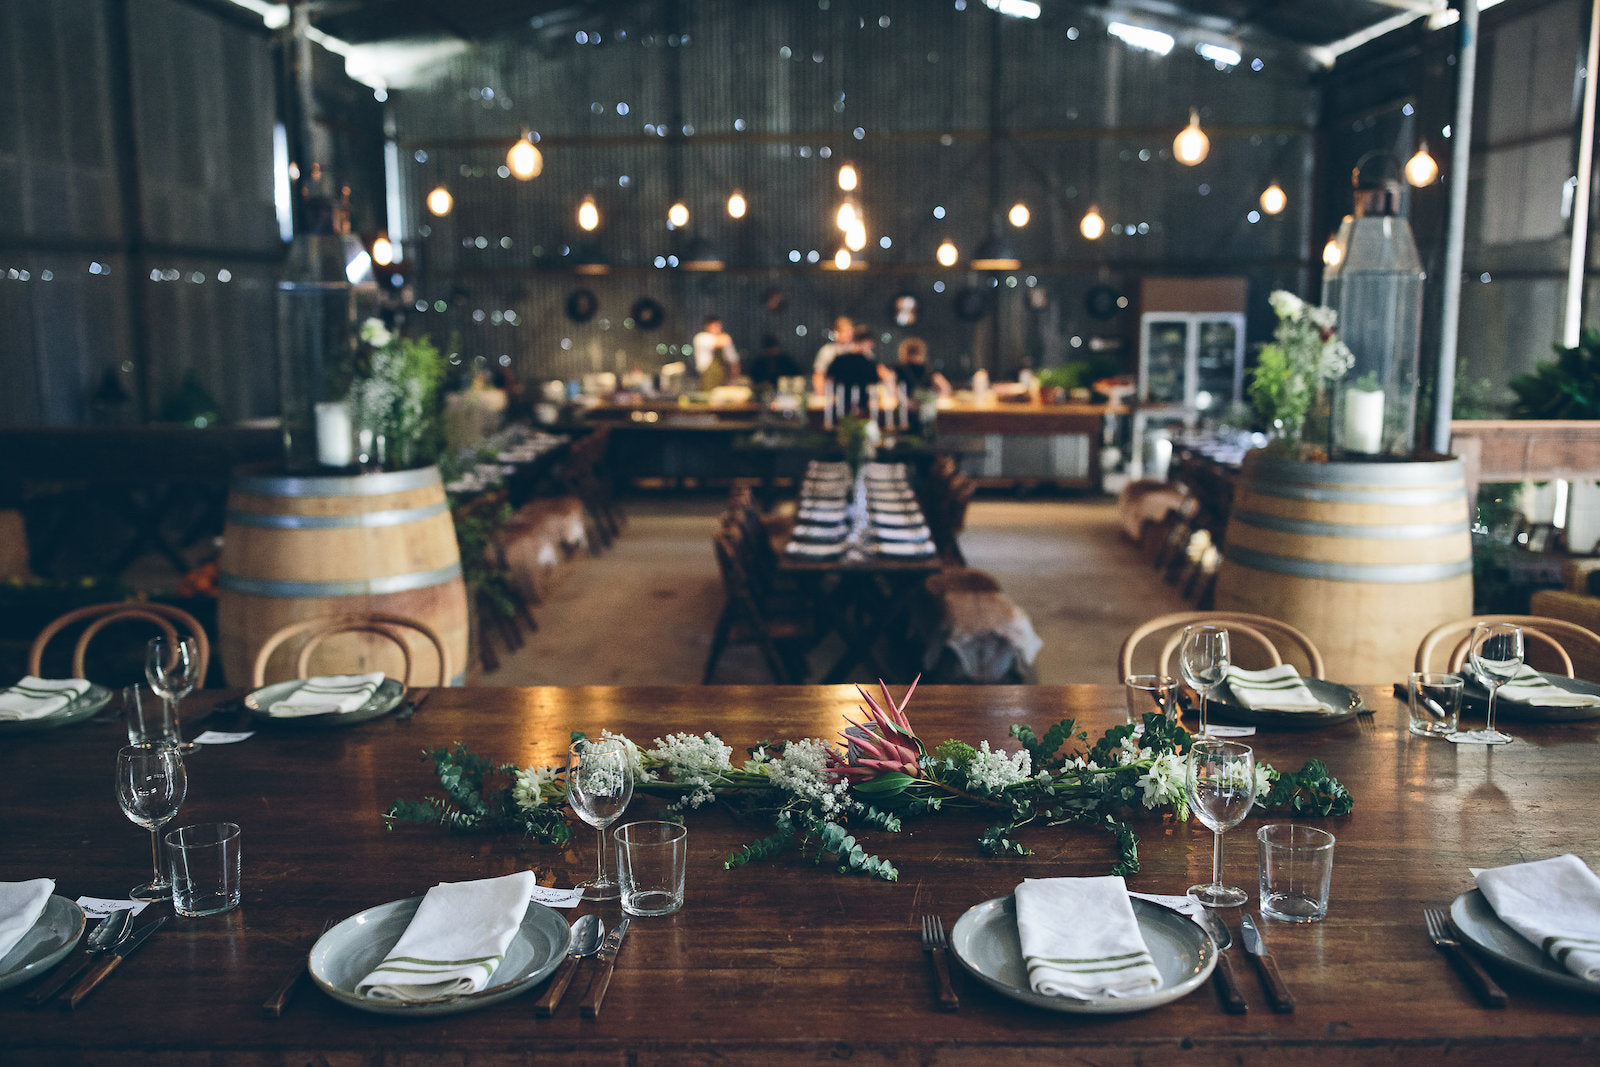 Inside shed table setting - image credit Willow and Co